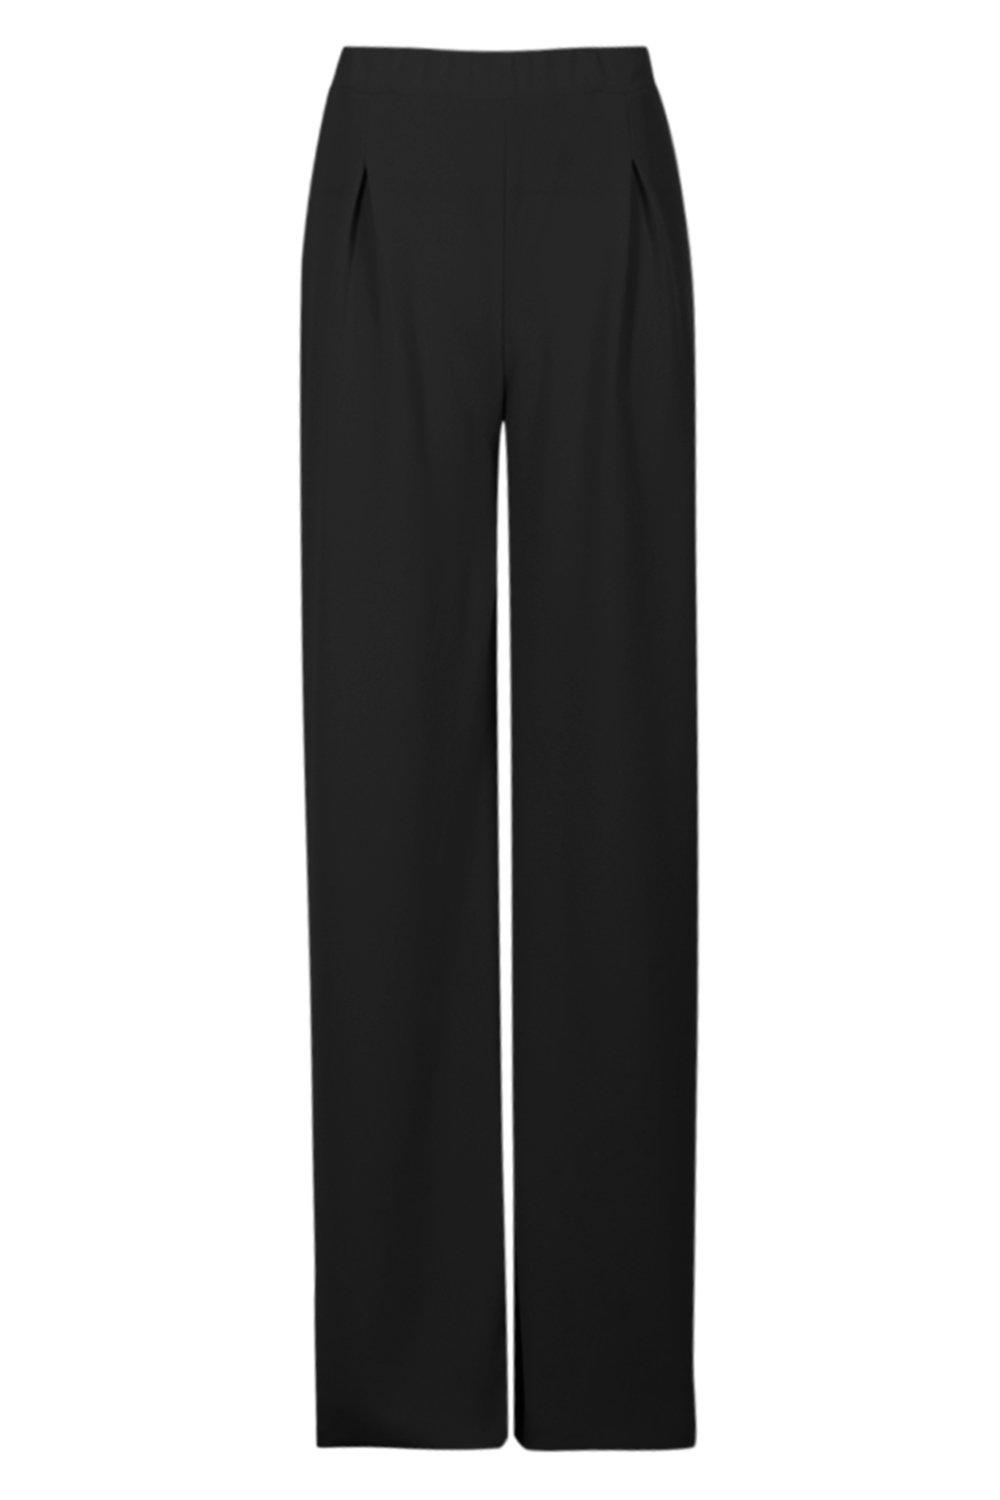 NEW-Boohoo-Womens-Tall-Wide-Leg-Pleat-Front-Trousers-in-Polyester